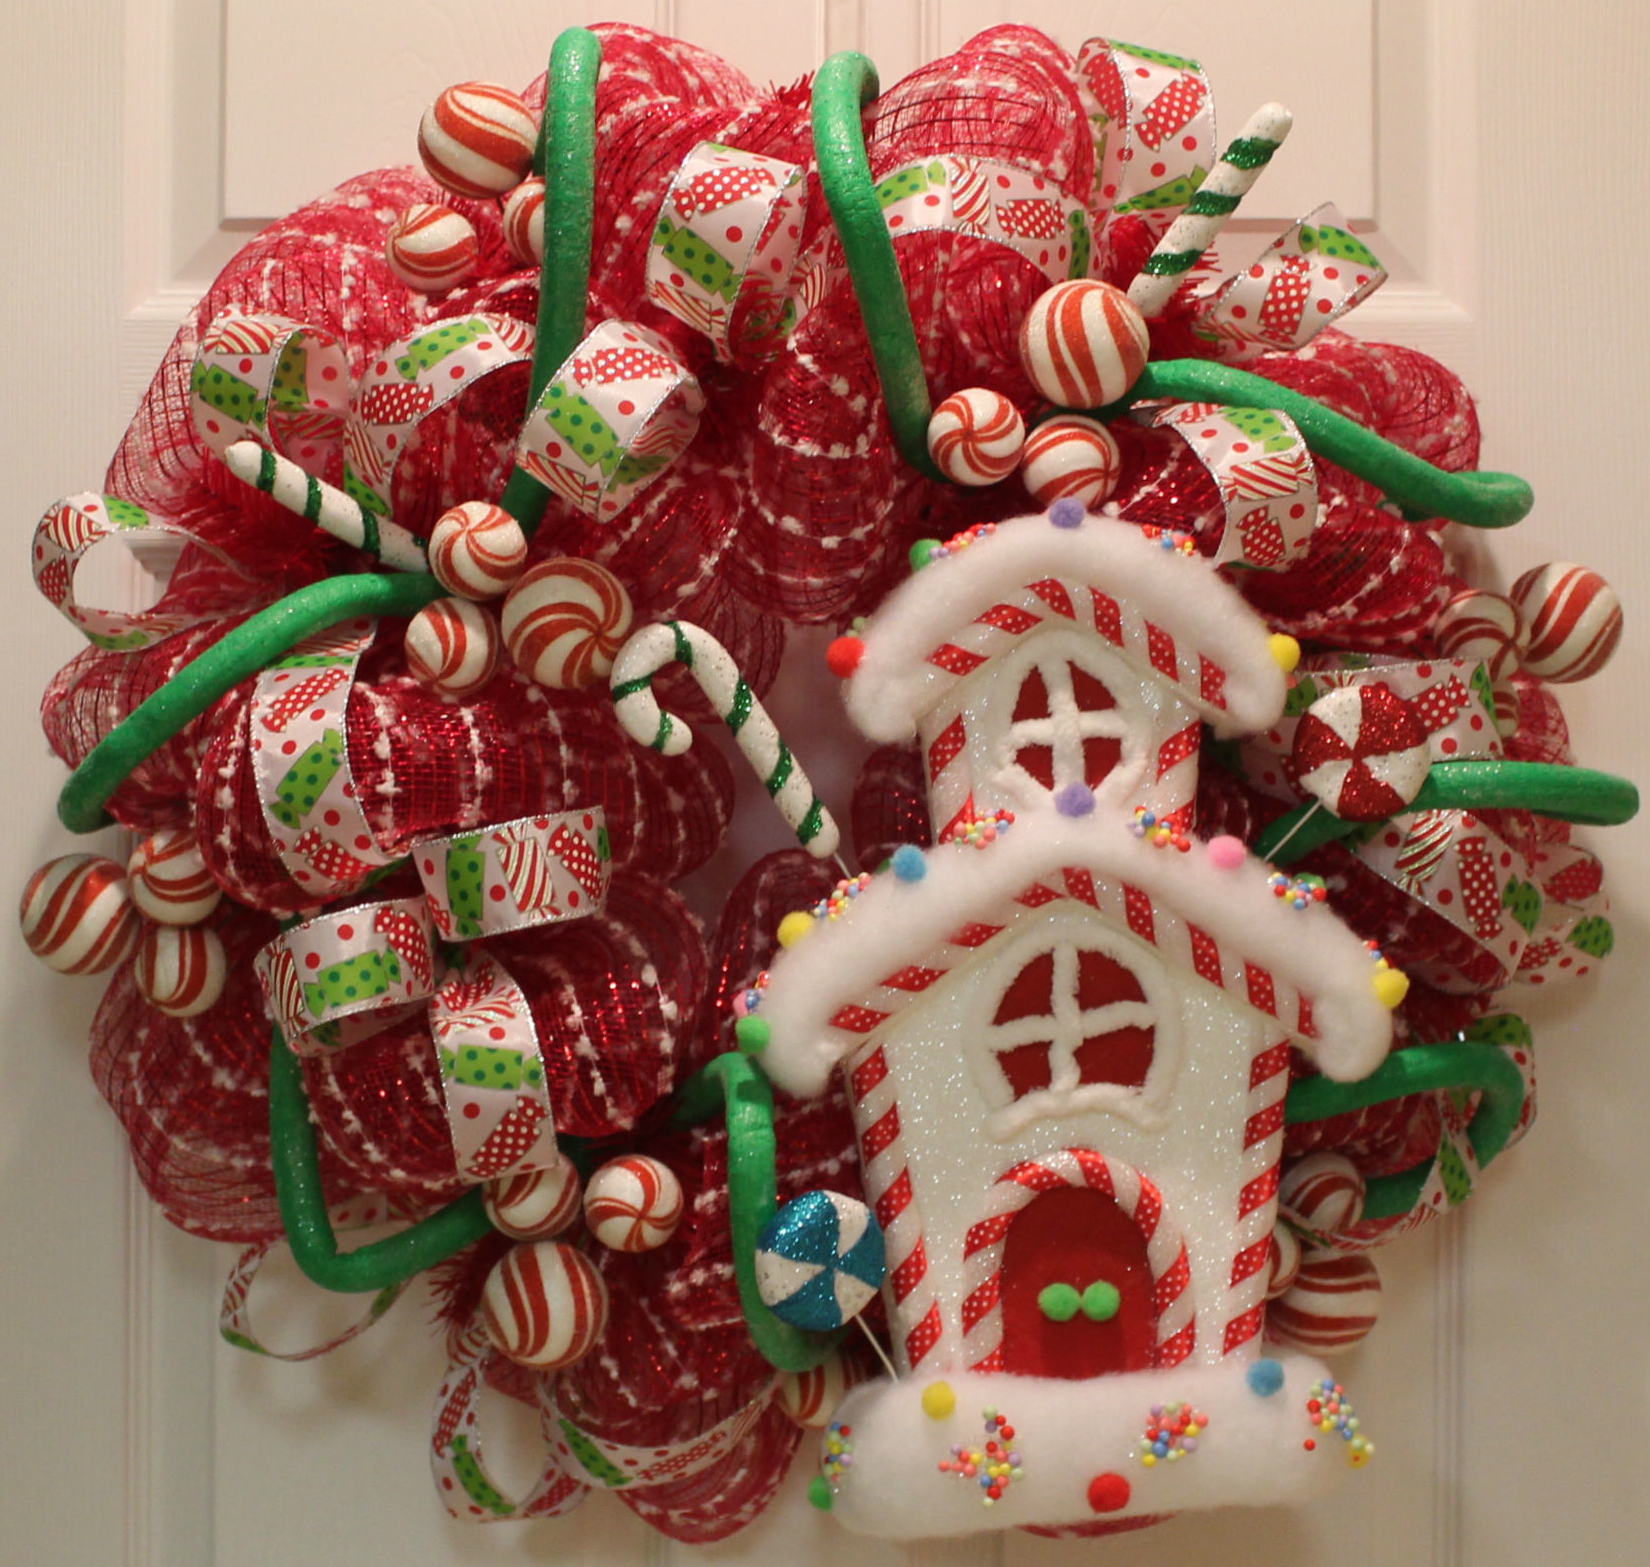 diy mesh holiday wreath tutorial candyland - How To Make A Christmas Wreath With Mesh